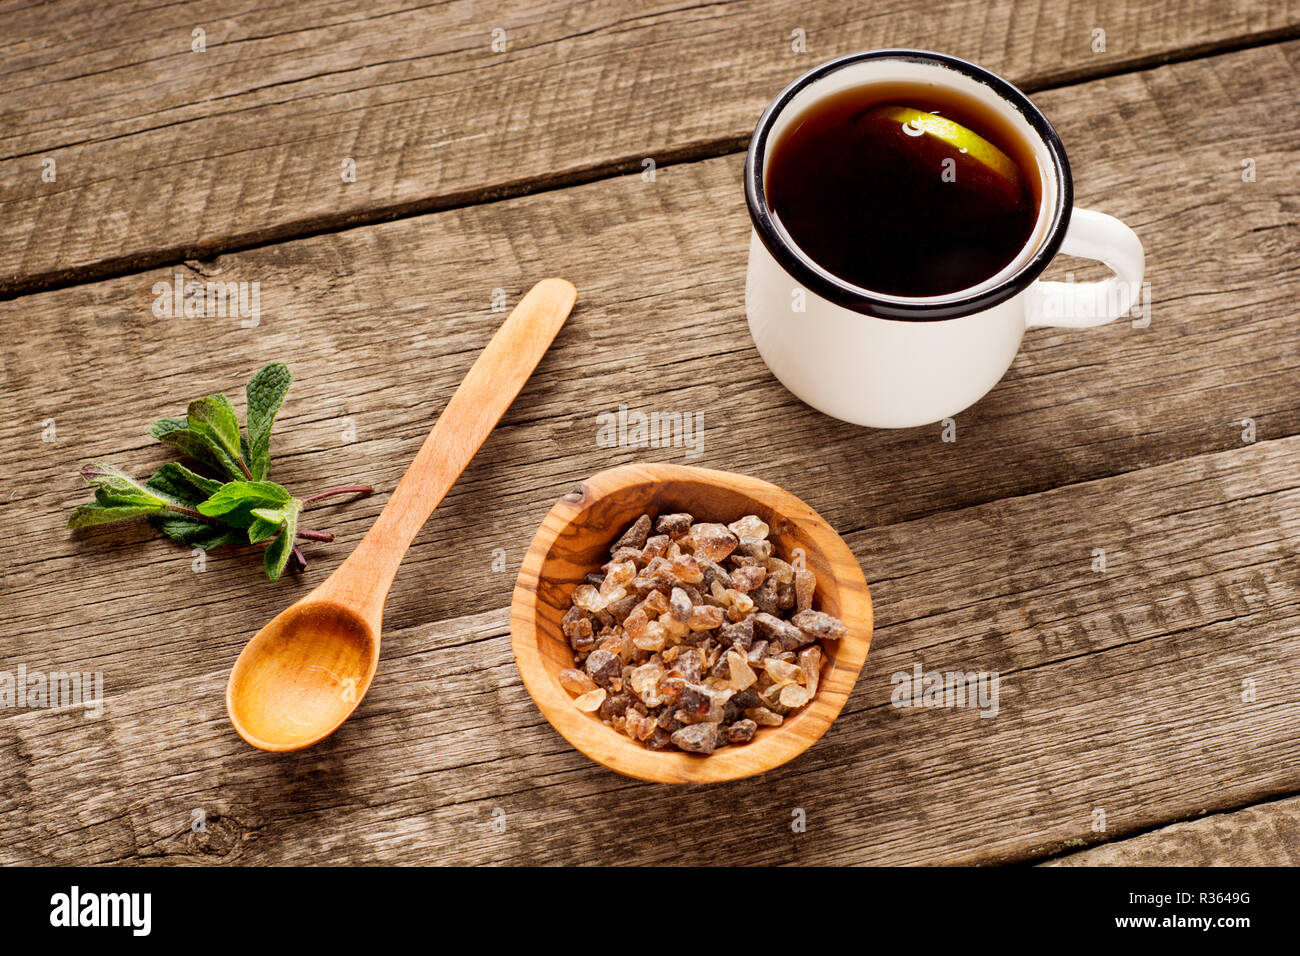 Tea cup with mint leaf and brown sugar in bowl on rustic wooden background. Copy space. Top view. Stock Photo